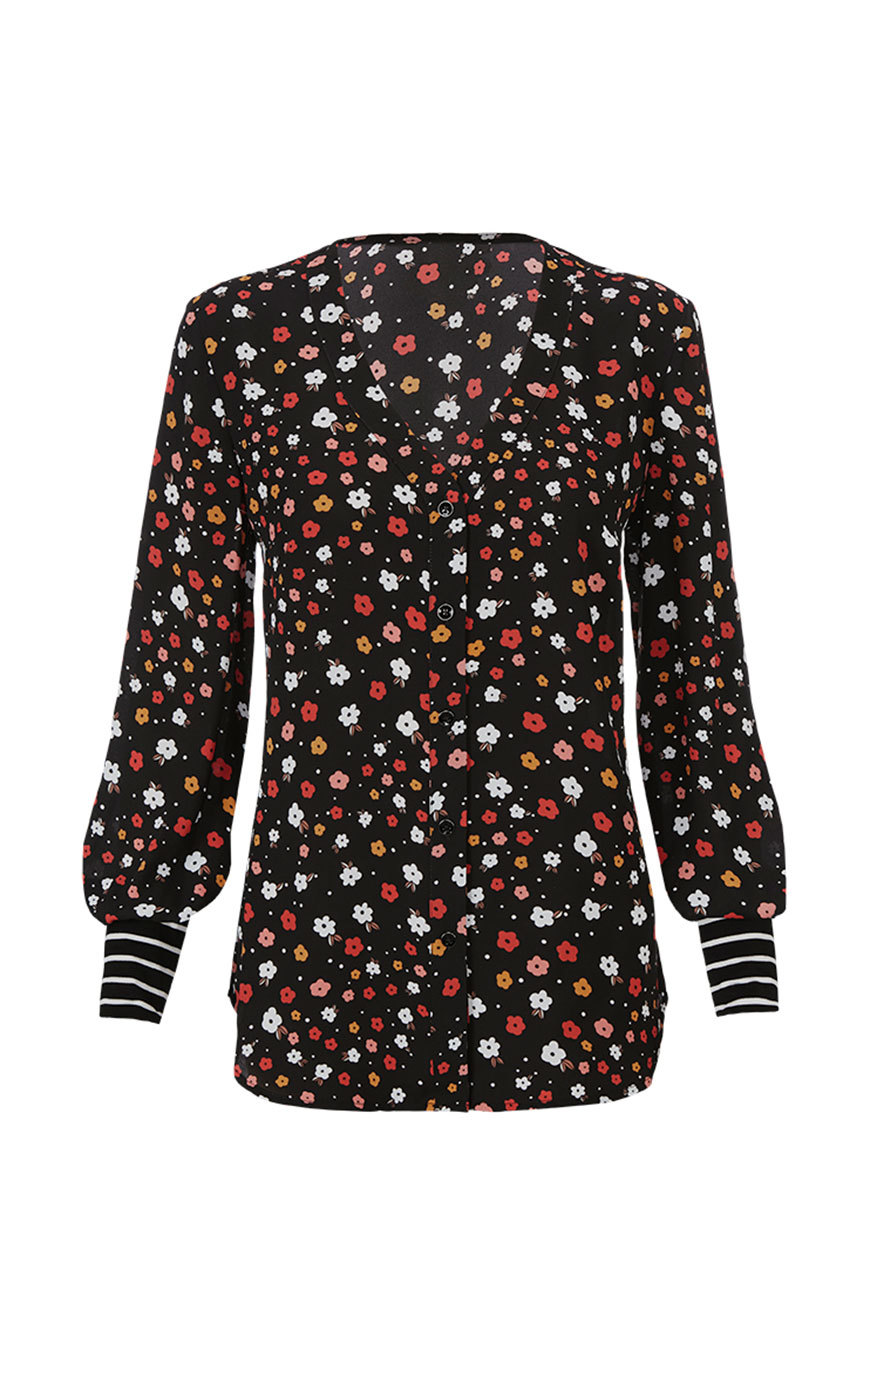 cabi's Cheerful Blouse